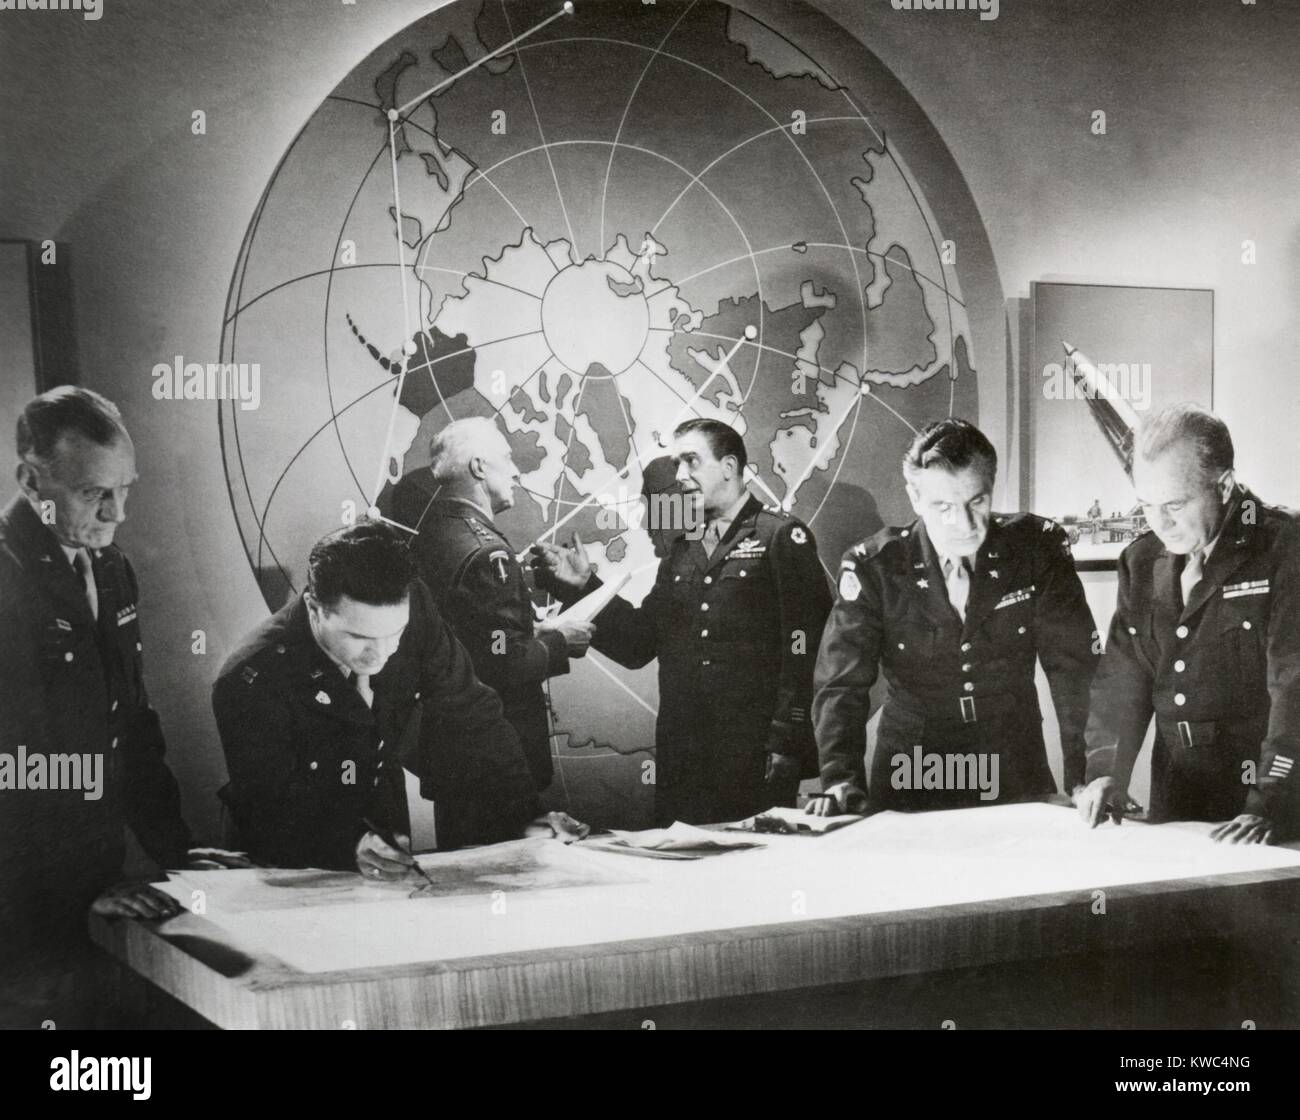 Movie still from a U.S. Army film about a hypothetical attack using an atomic bomb, Nov. 1948. Scene of Army generals - Stock Image